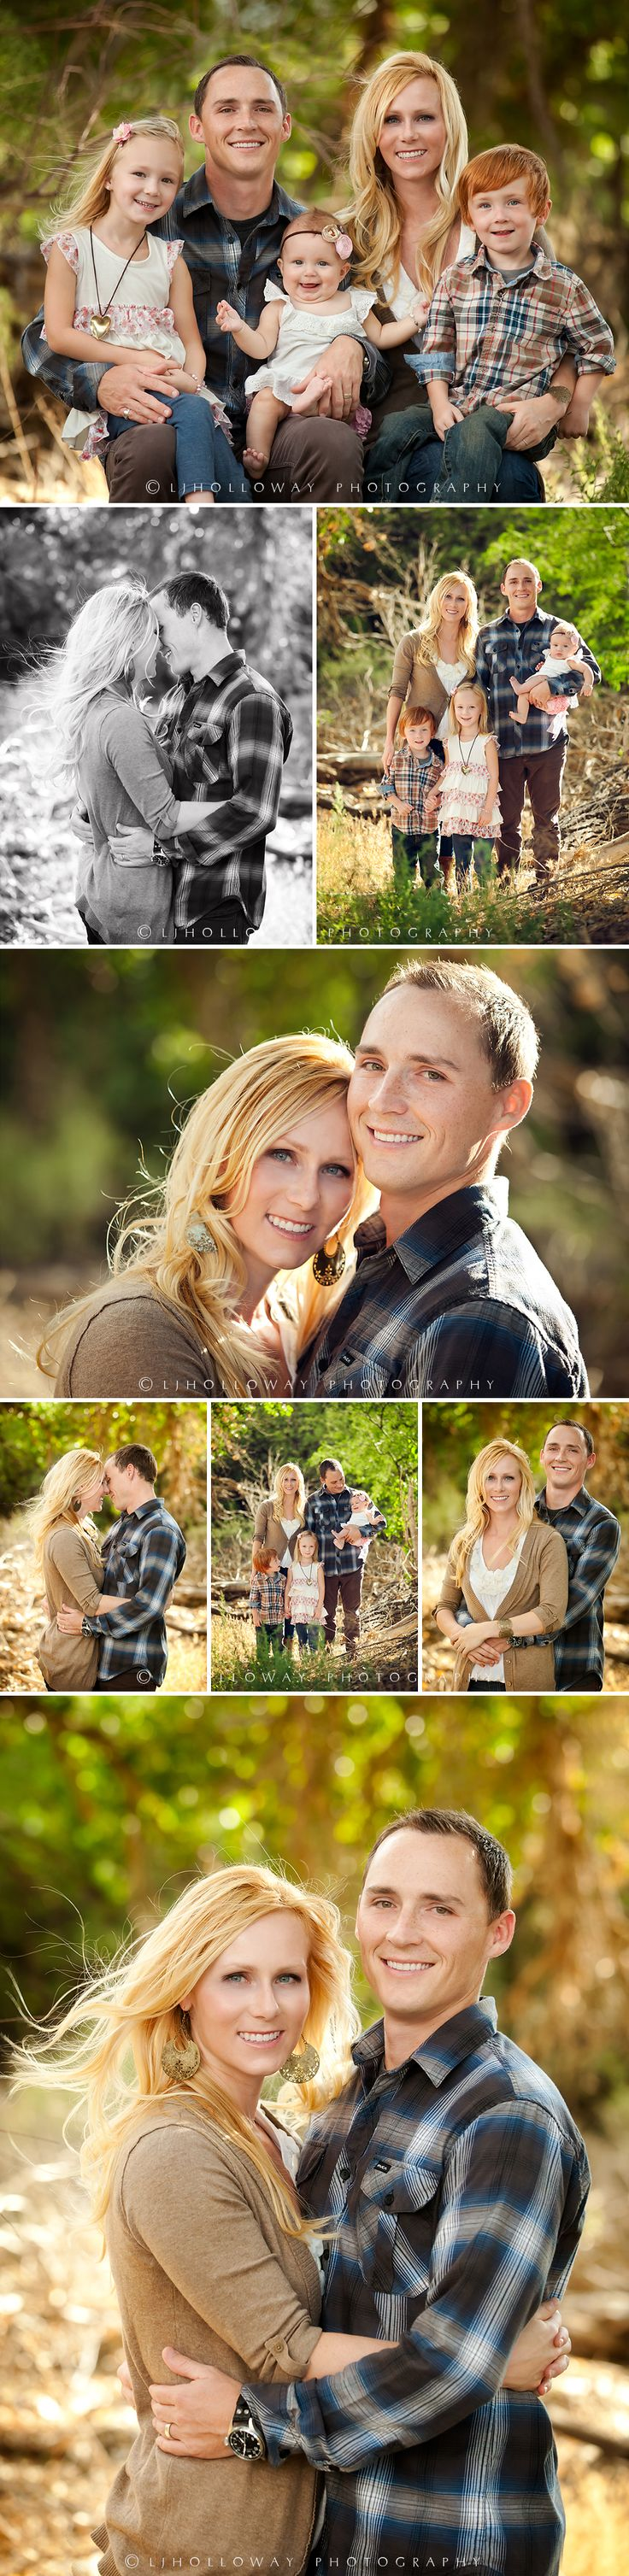 Family portraits with natural light